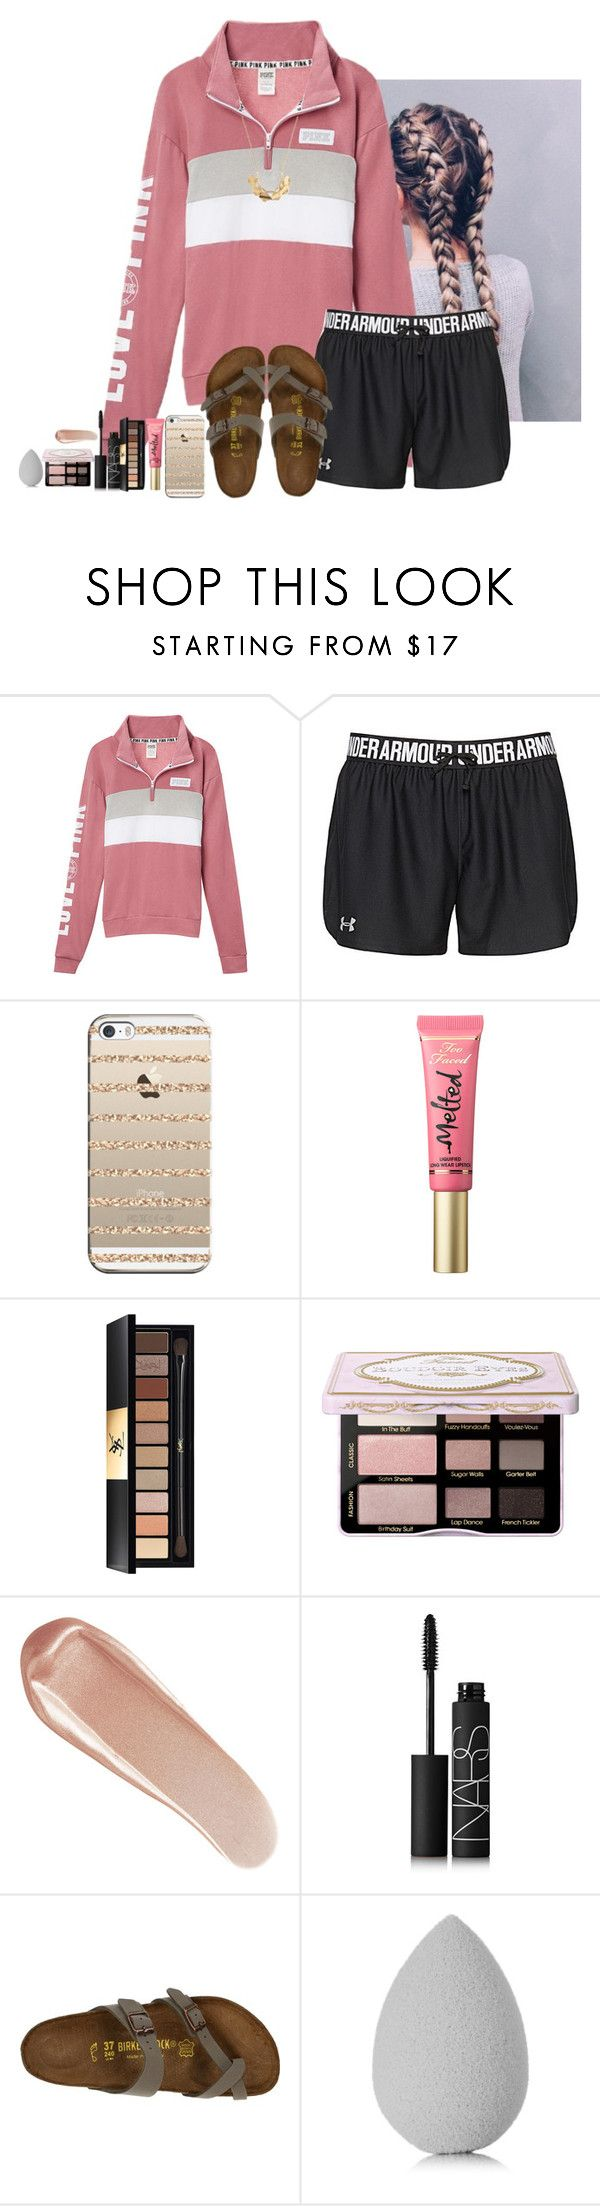 """I ❤️  YOU!!!!!"" by amaya-leigh ❤ liked on Polyvore featuring Under Armour, Casetify, Too Faced Cosmetics, Yves Saint Laurent, NARS Cosmetics, Birkenstock, beautyblender and Banana Republic"